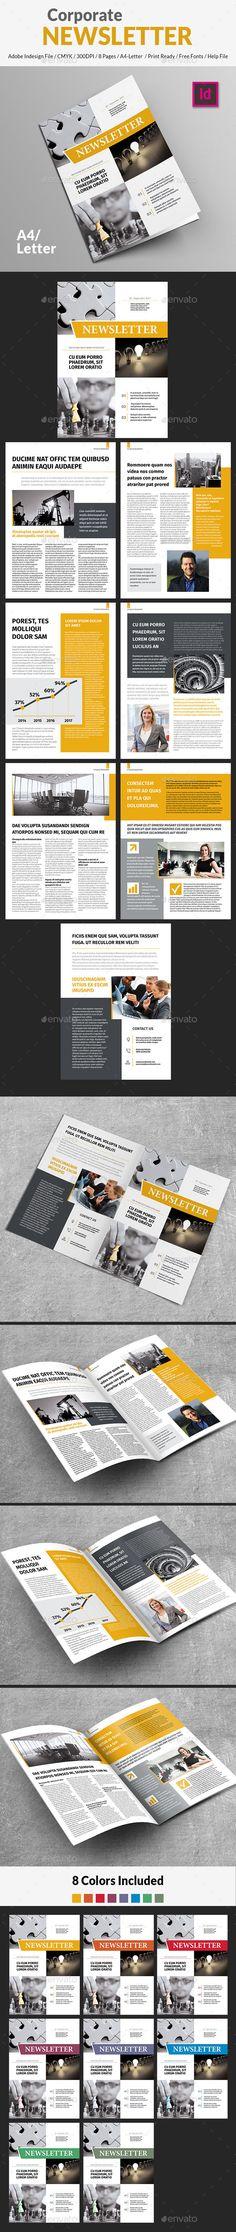 Newsletter Ideas  Newsletter Ideas Indesign Templates And